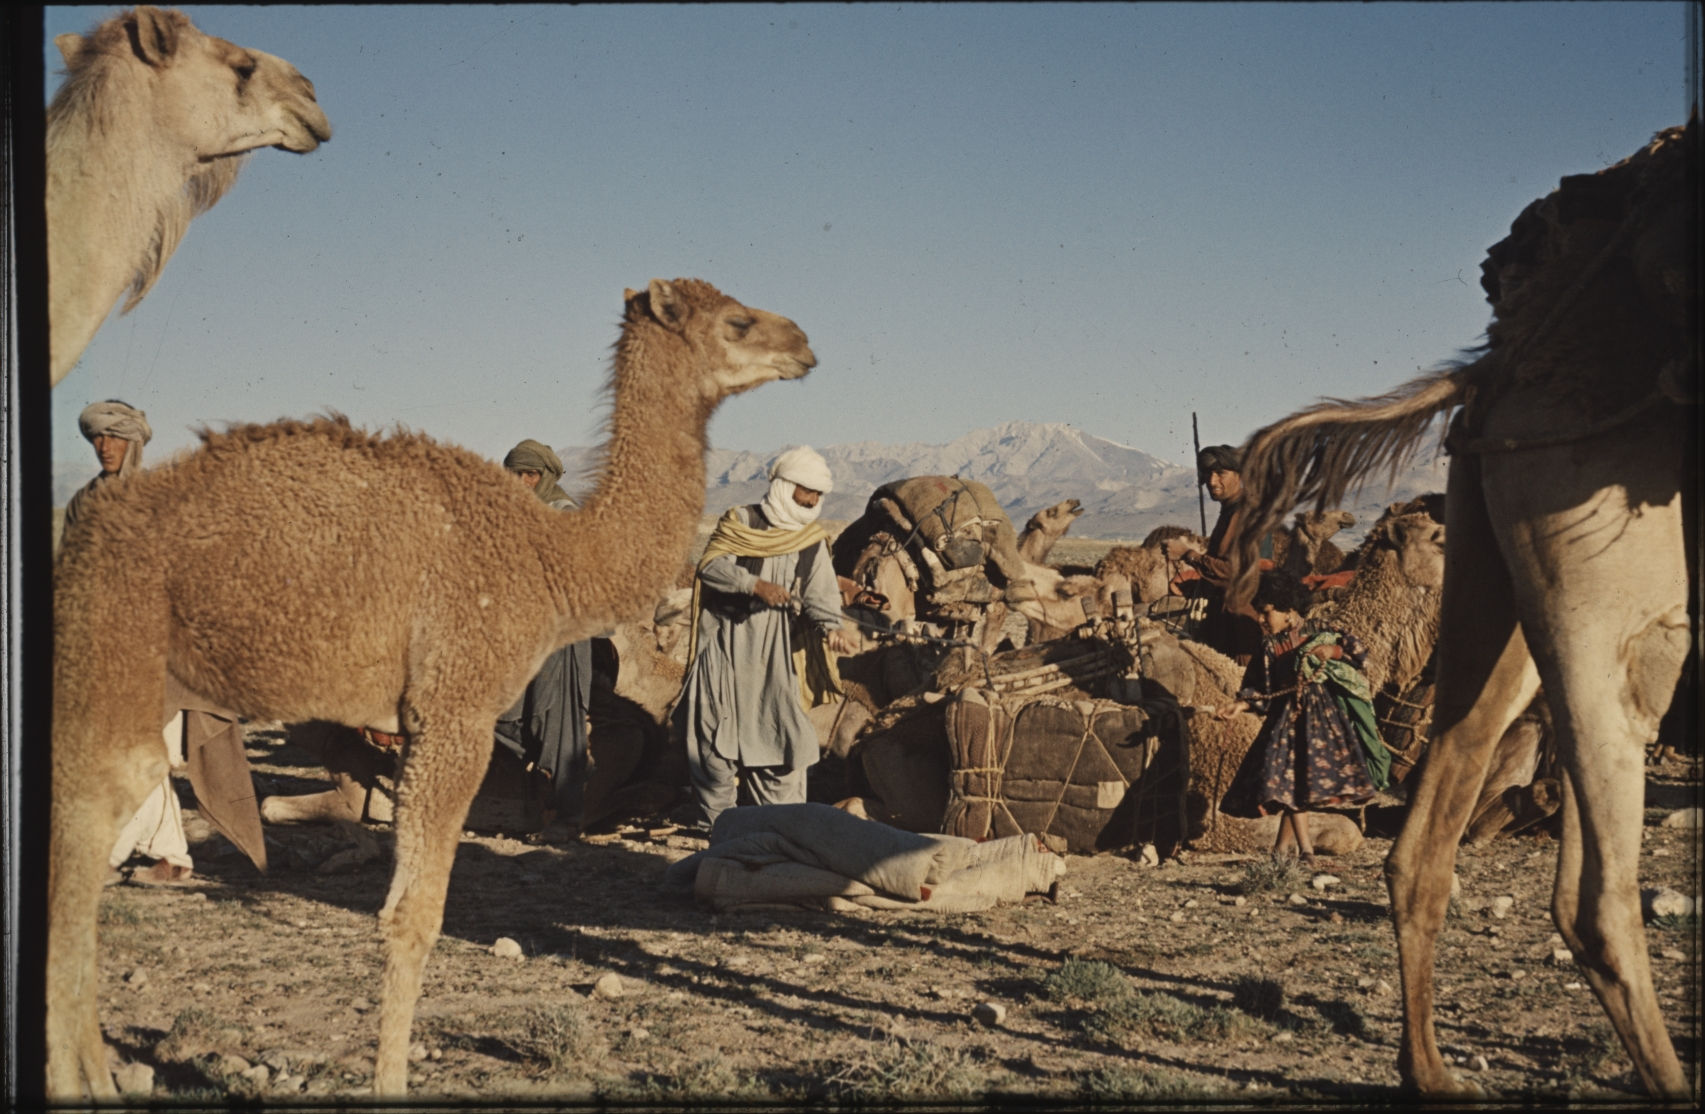 The belongings of the nomads are packed upin a very particular manner. Photo: Jean Bourgeois, 1968